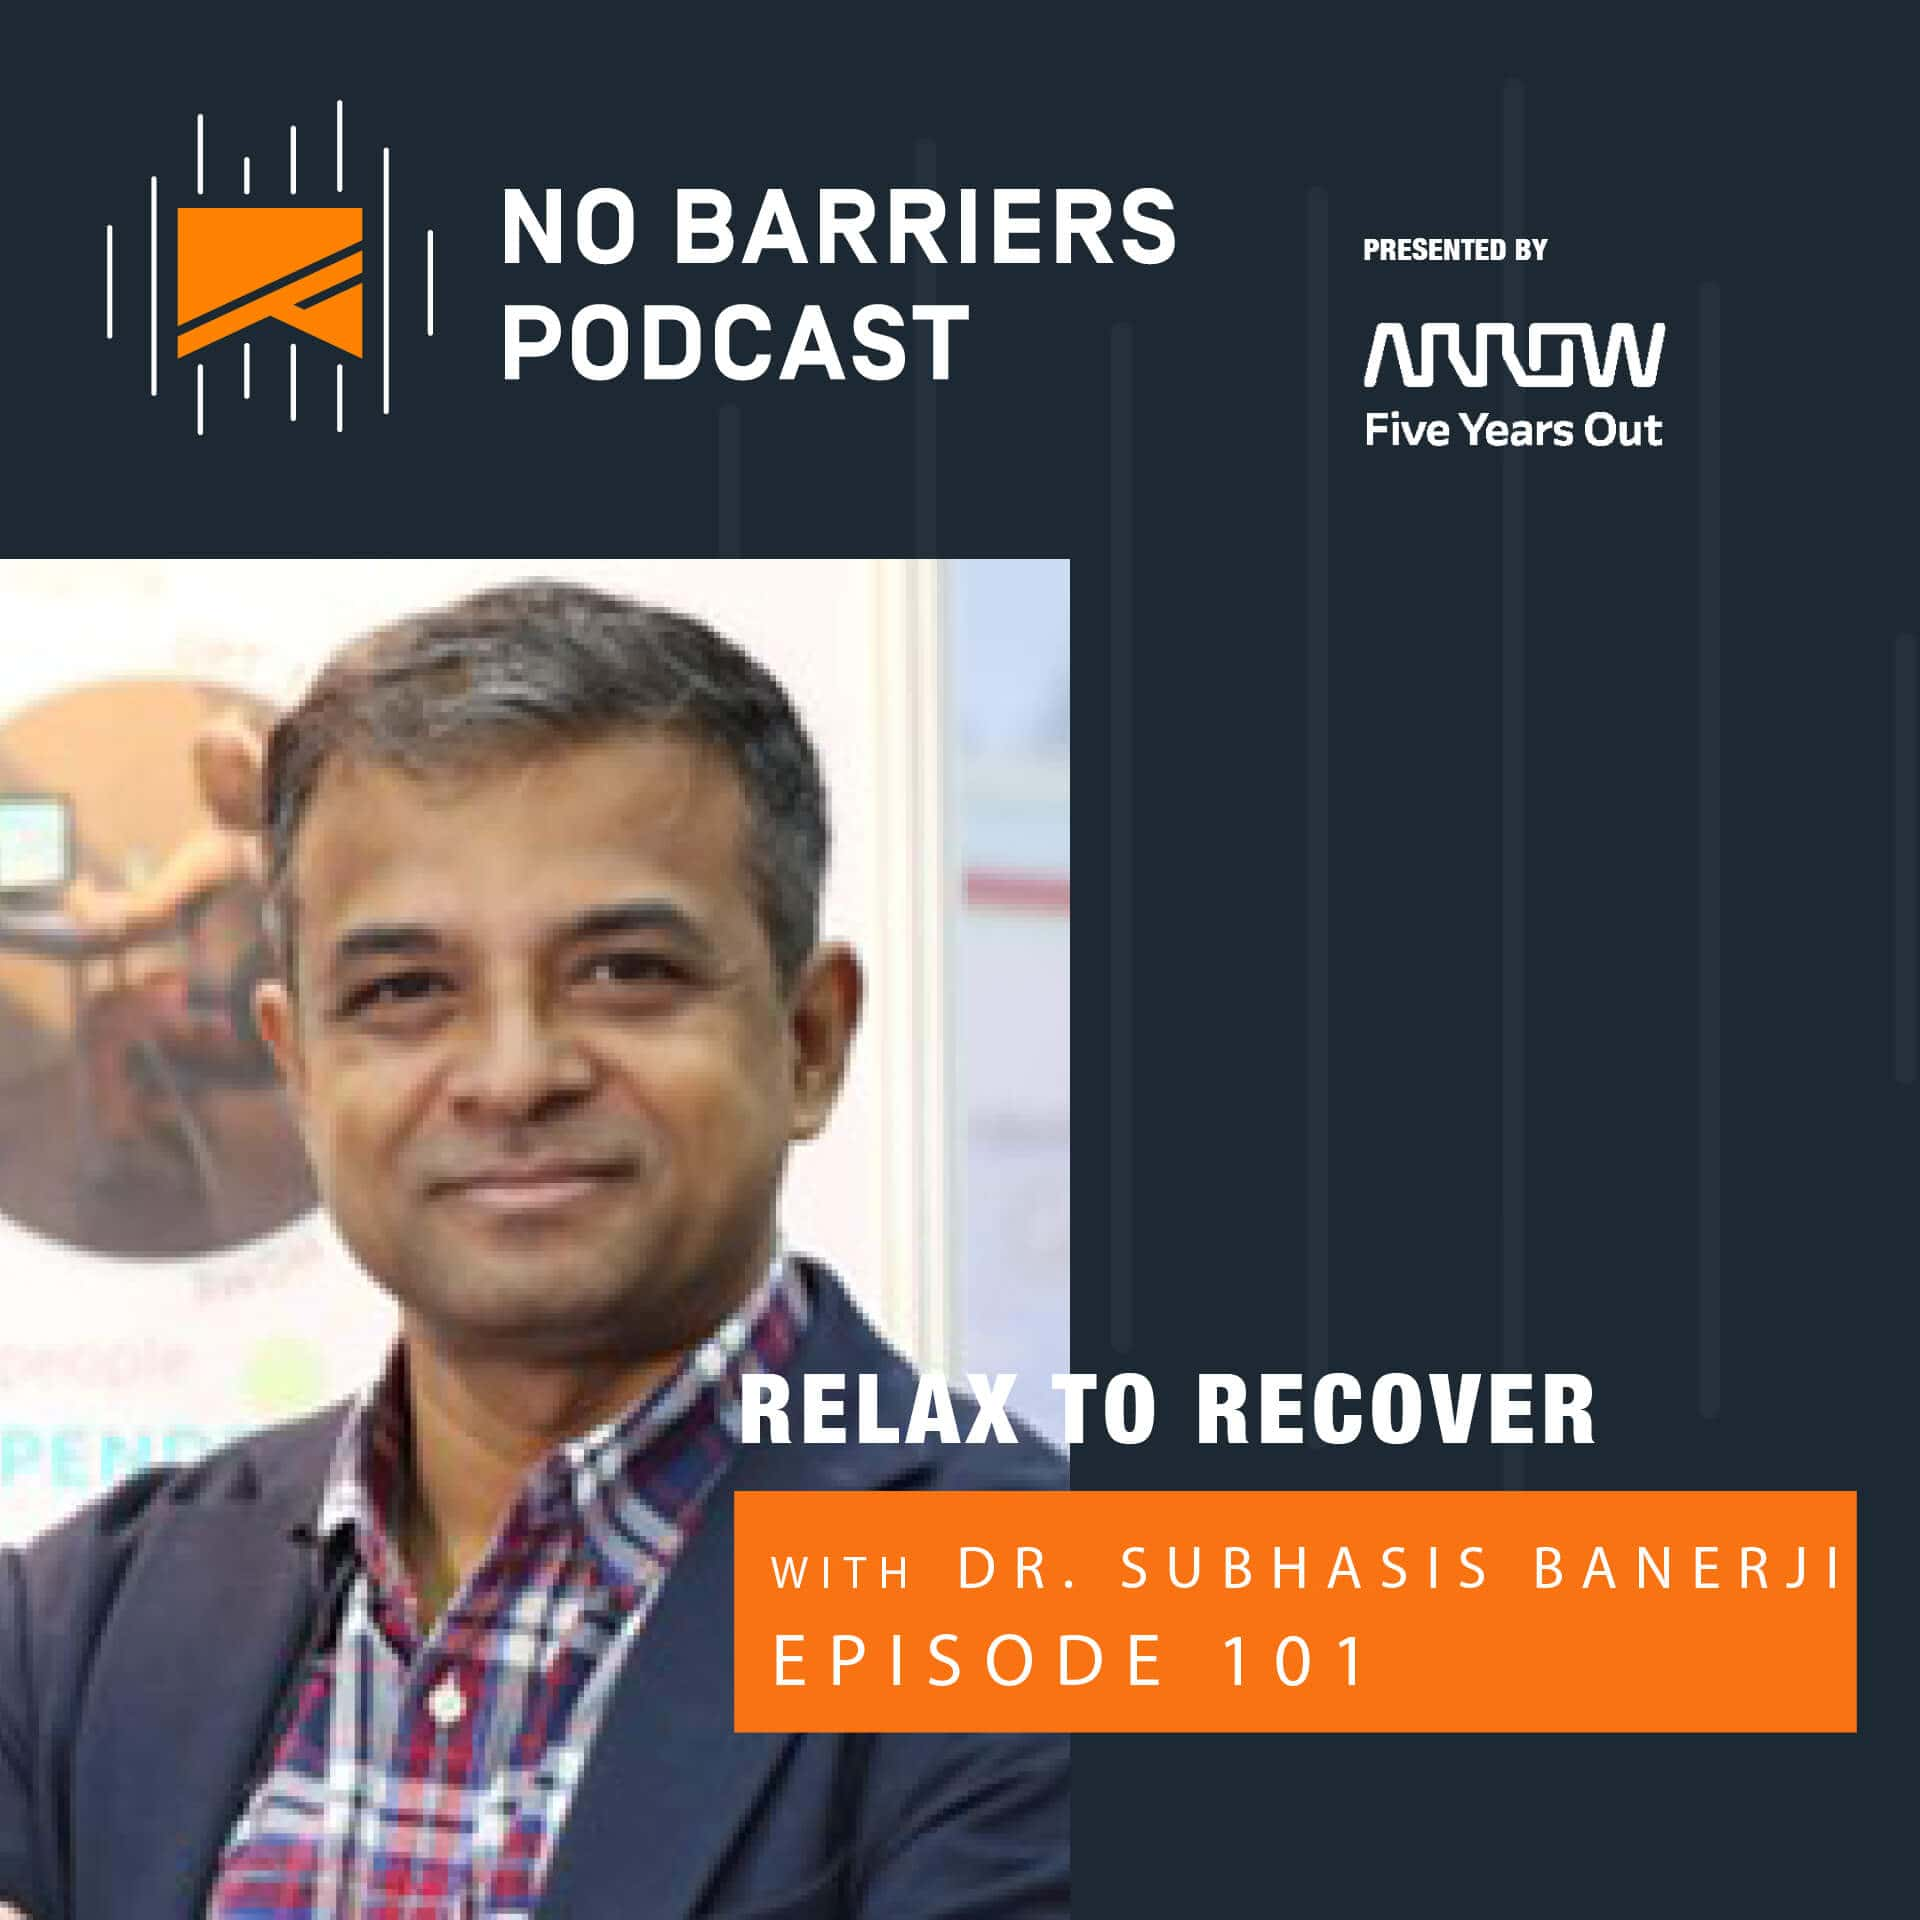 NB_4958_NoBarriers_Podcast_EP101_WEB